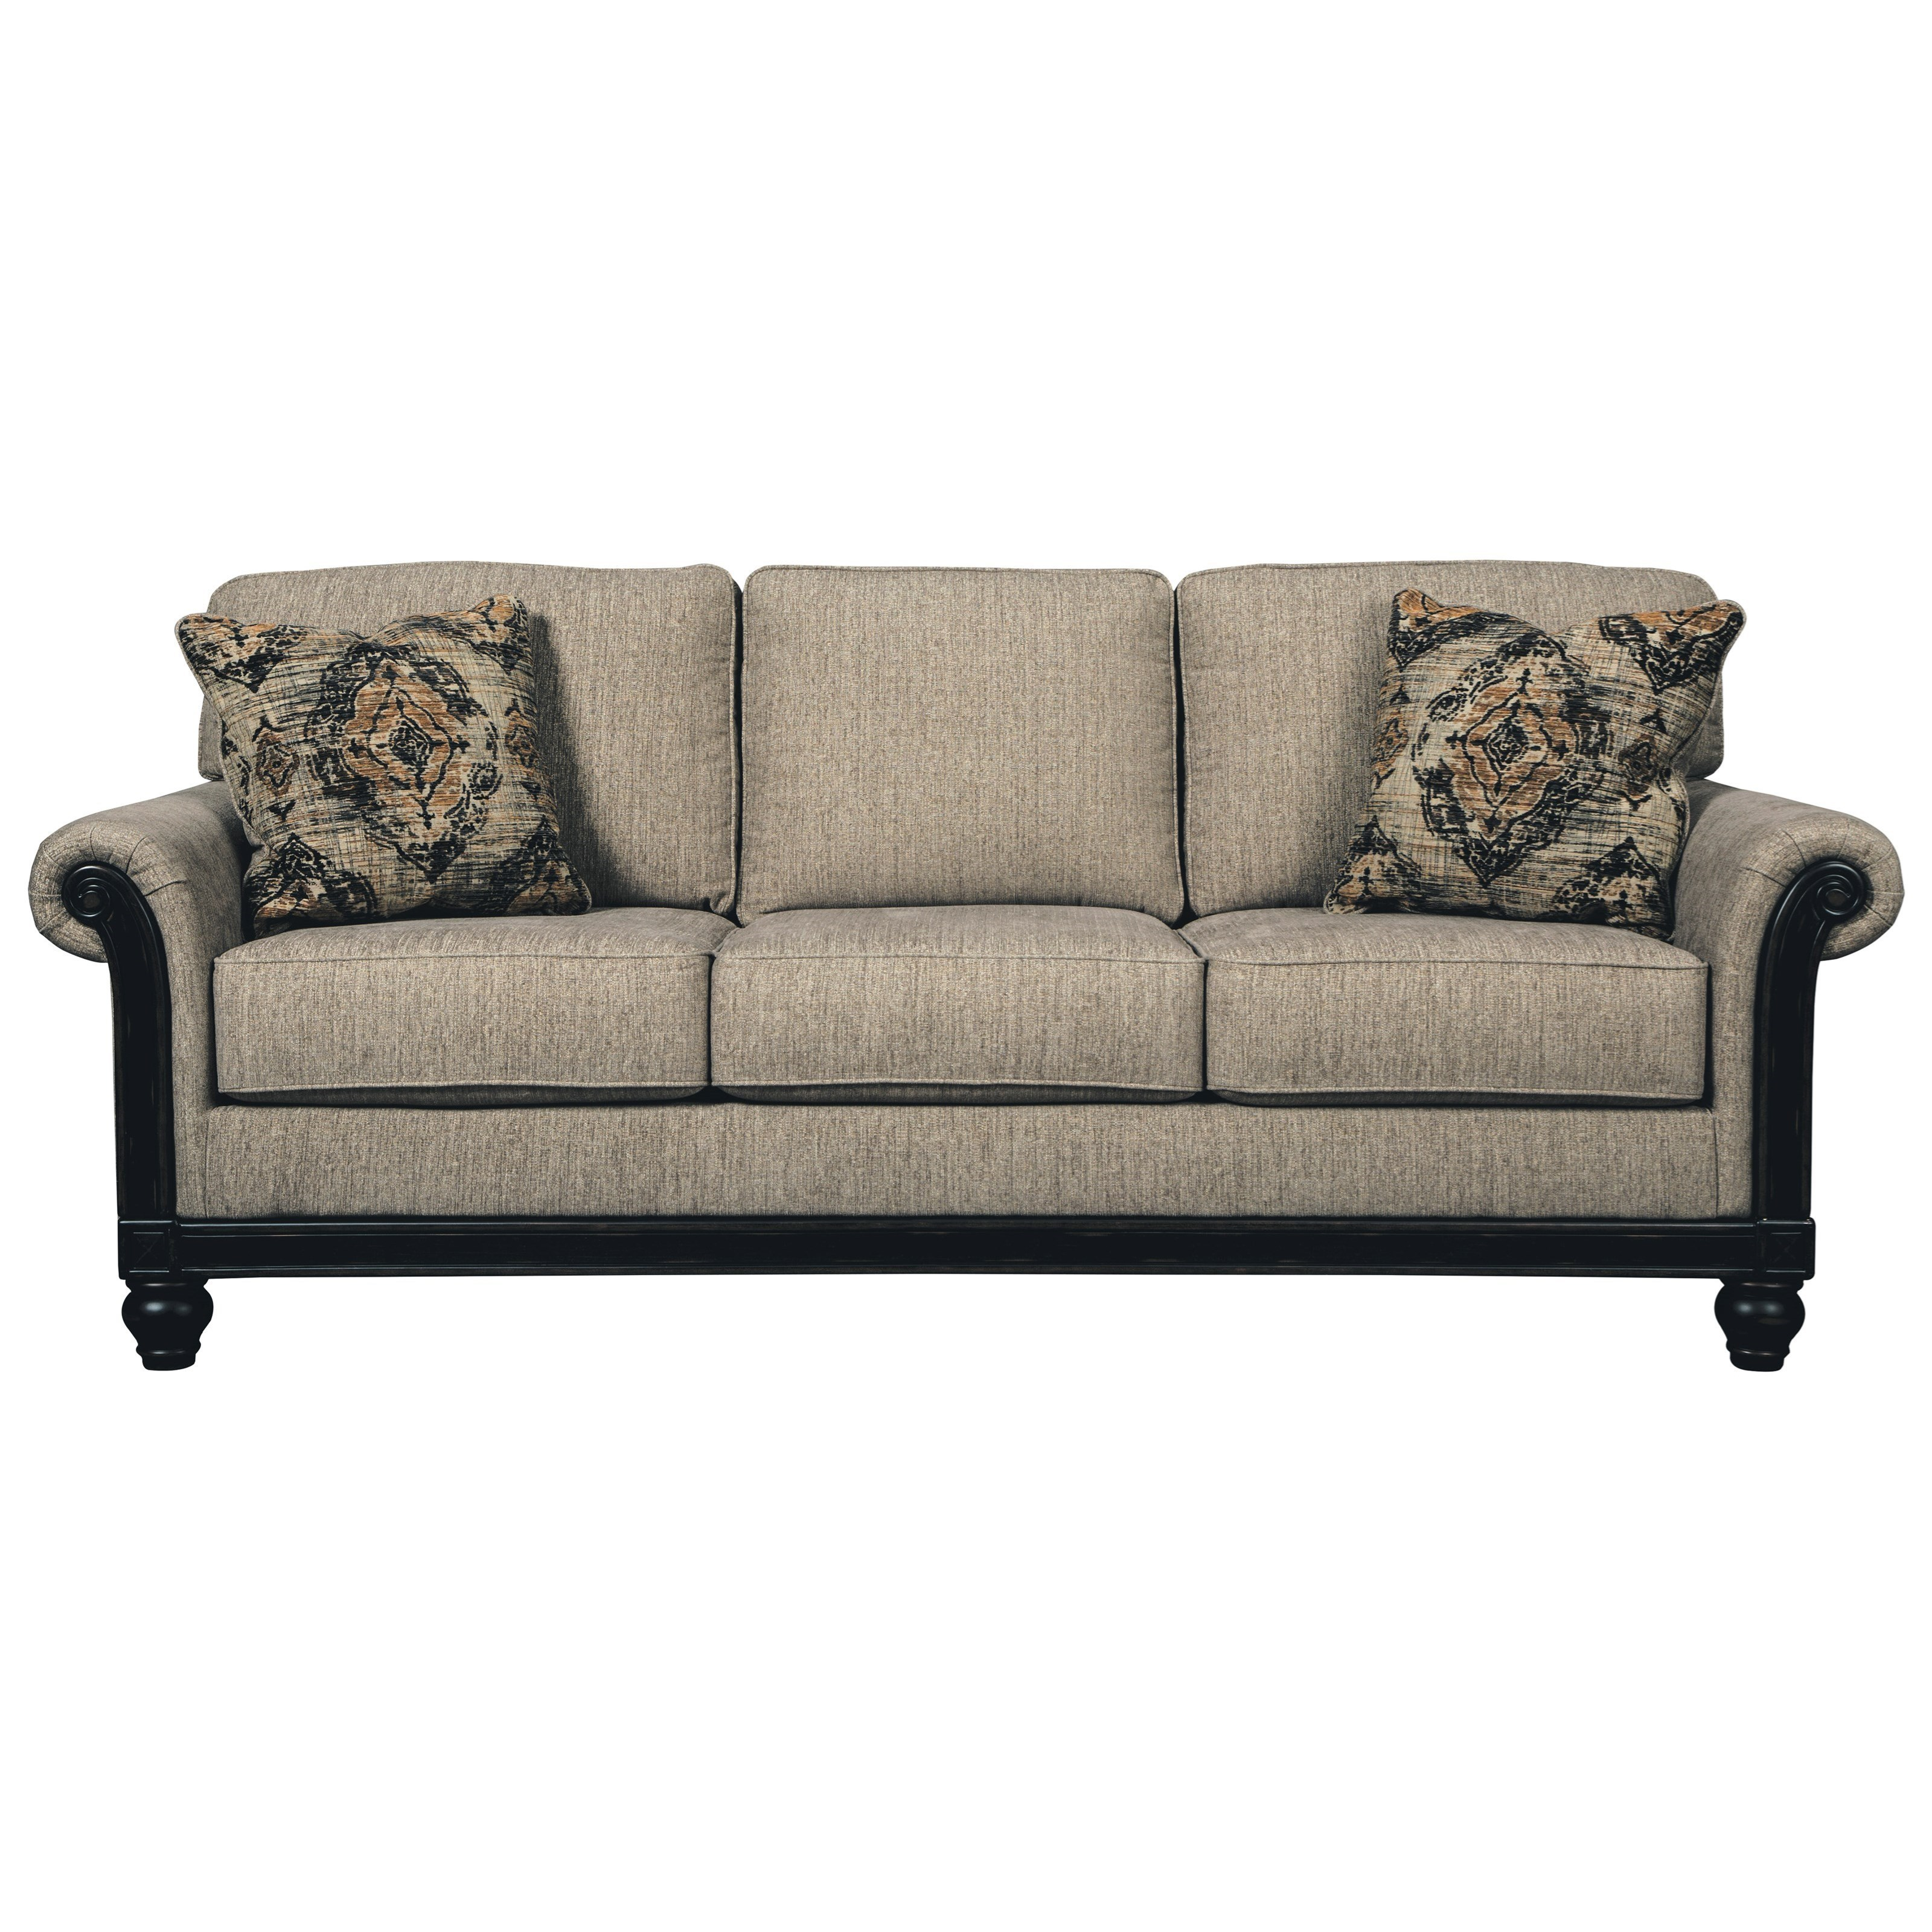 Signature Design By Ashley Blackwood 3350339 Transtional Queen Sofa Sleeper  With Memory Foam Mattress | John V Schultz Furniture | Sofa Sleeper